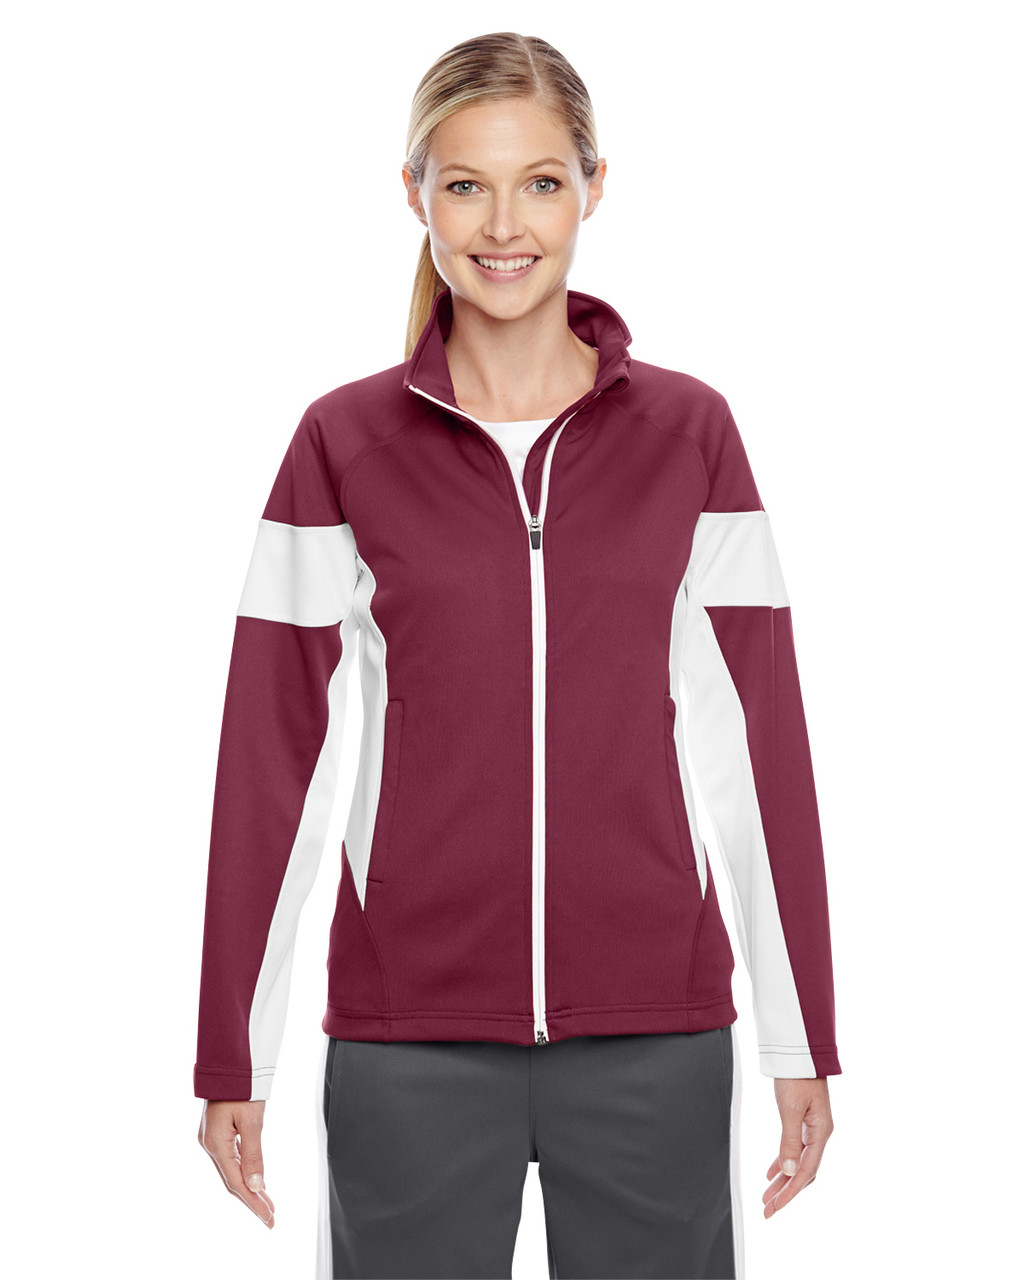 Maroon/White - TT34W Team 365 Ladies' Elite Performance Full-Zip Jacket